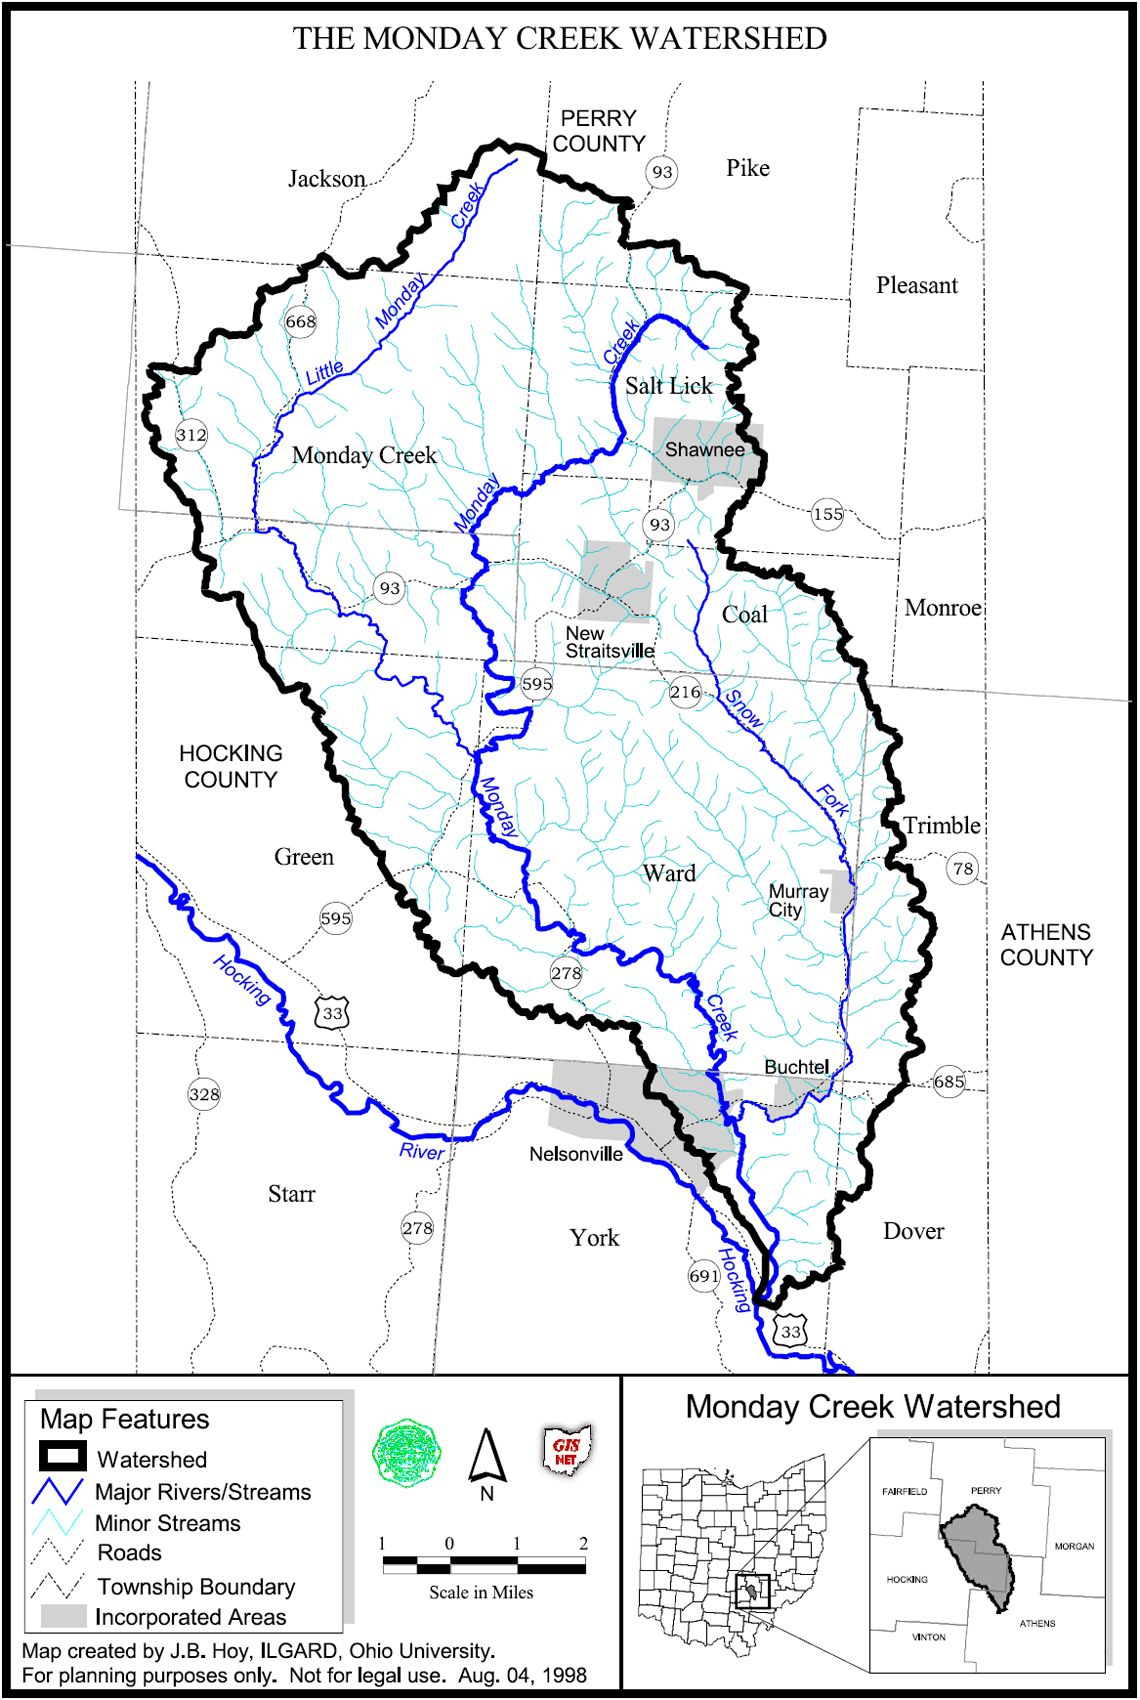 1140x1700 Our Watershed Monday Creek Restoration Project